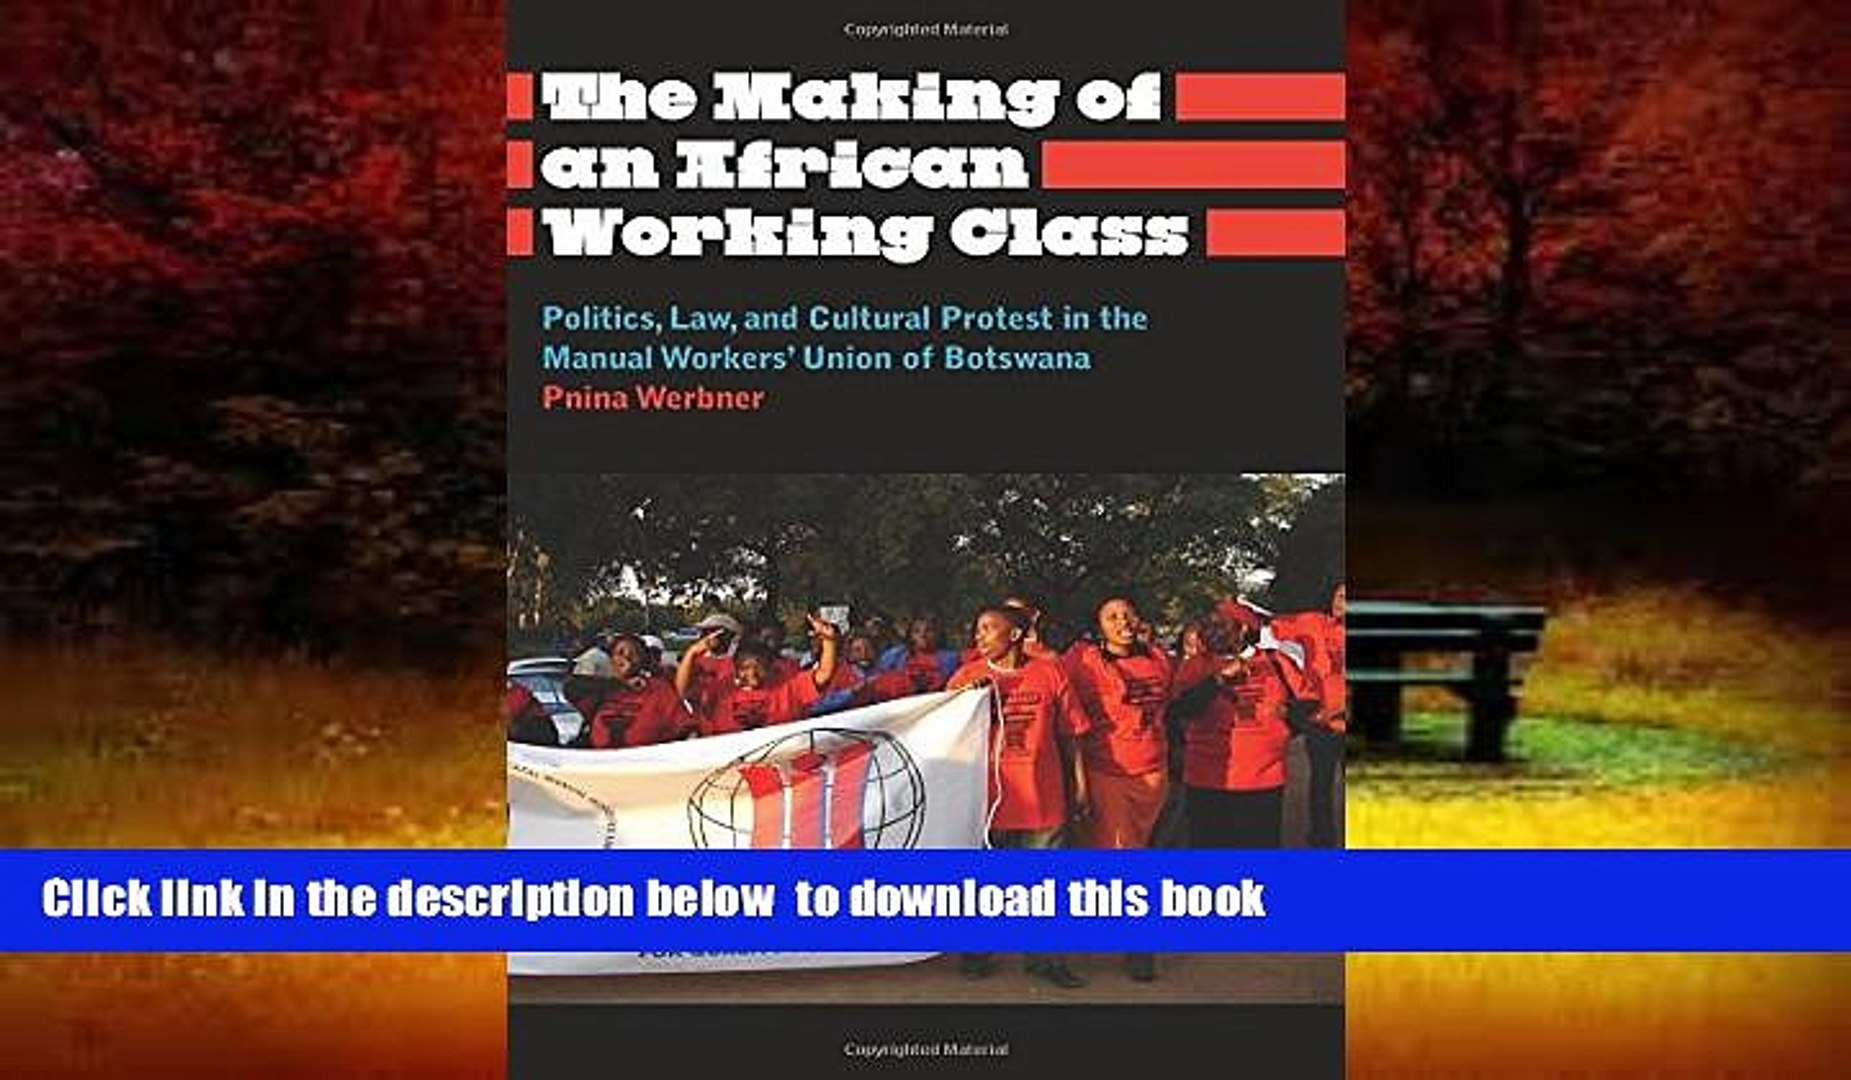 PDF [FREE] DOWNLOAD  The Making of an African Working Class: Politics, Law, and Cultural Protest